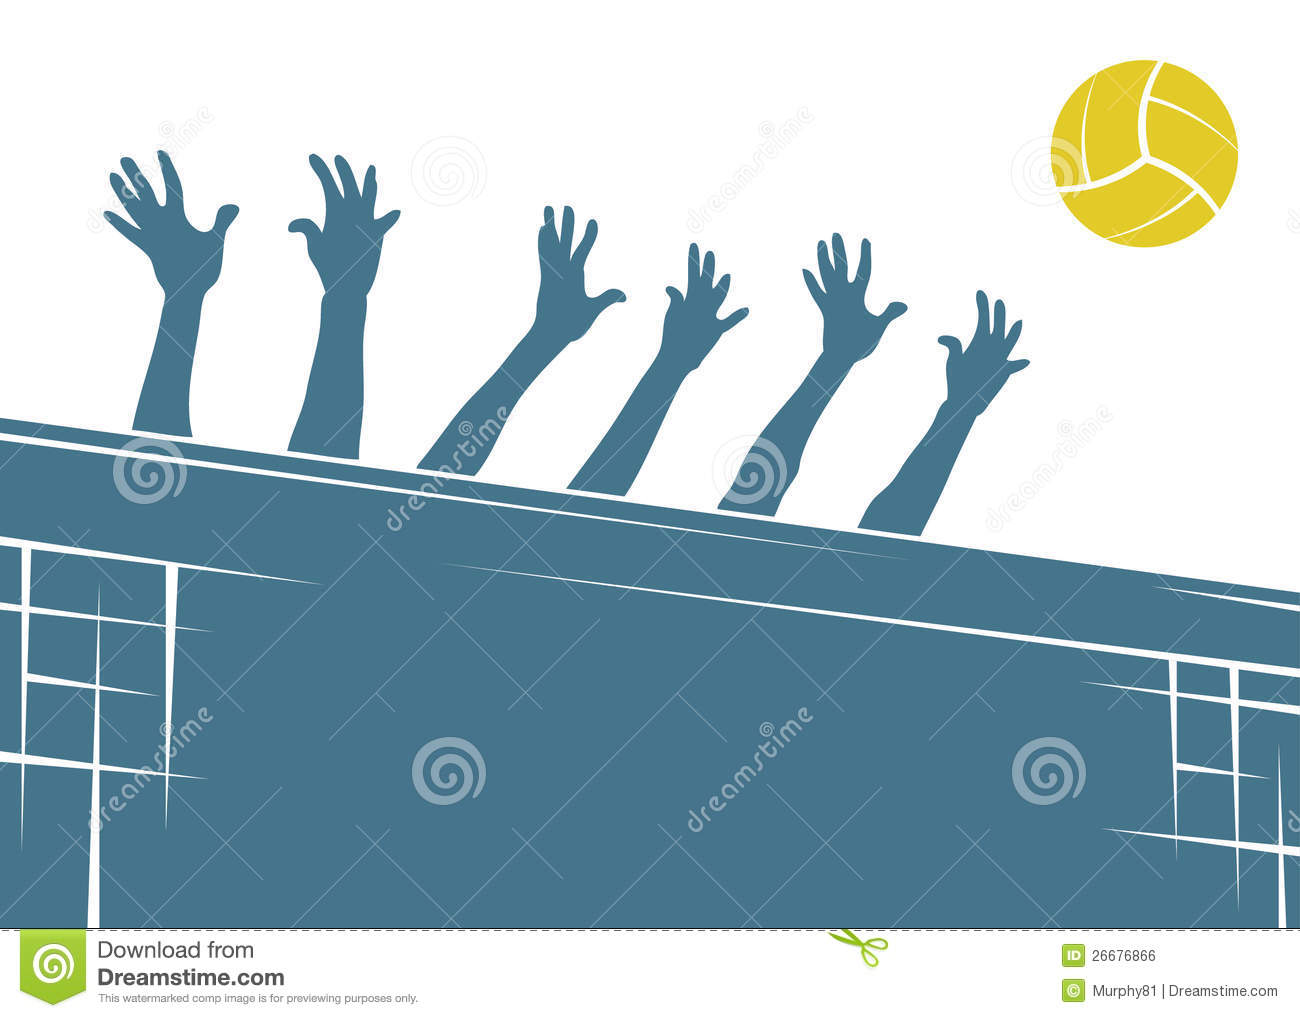 Volleyball Background Royalty Free Stock Image - Image: 26676866